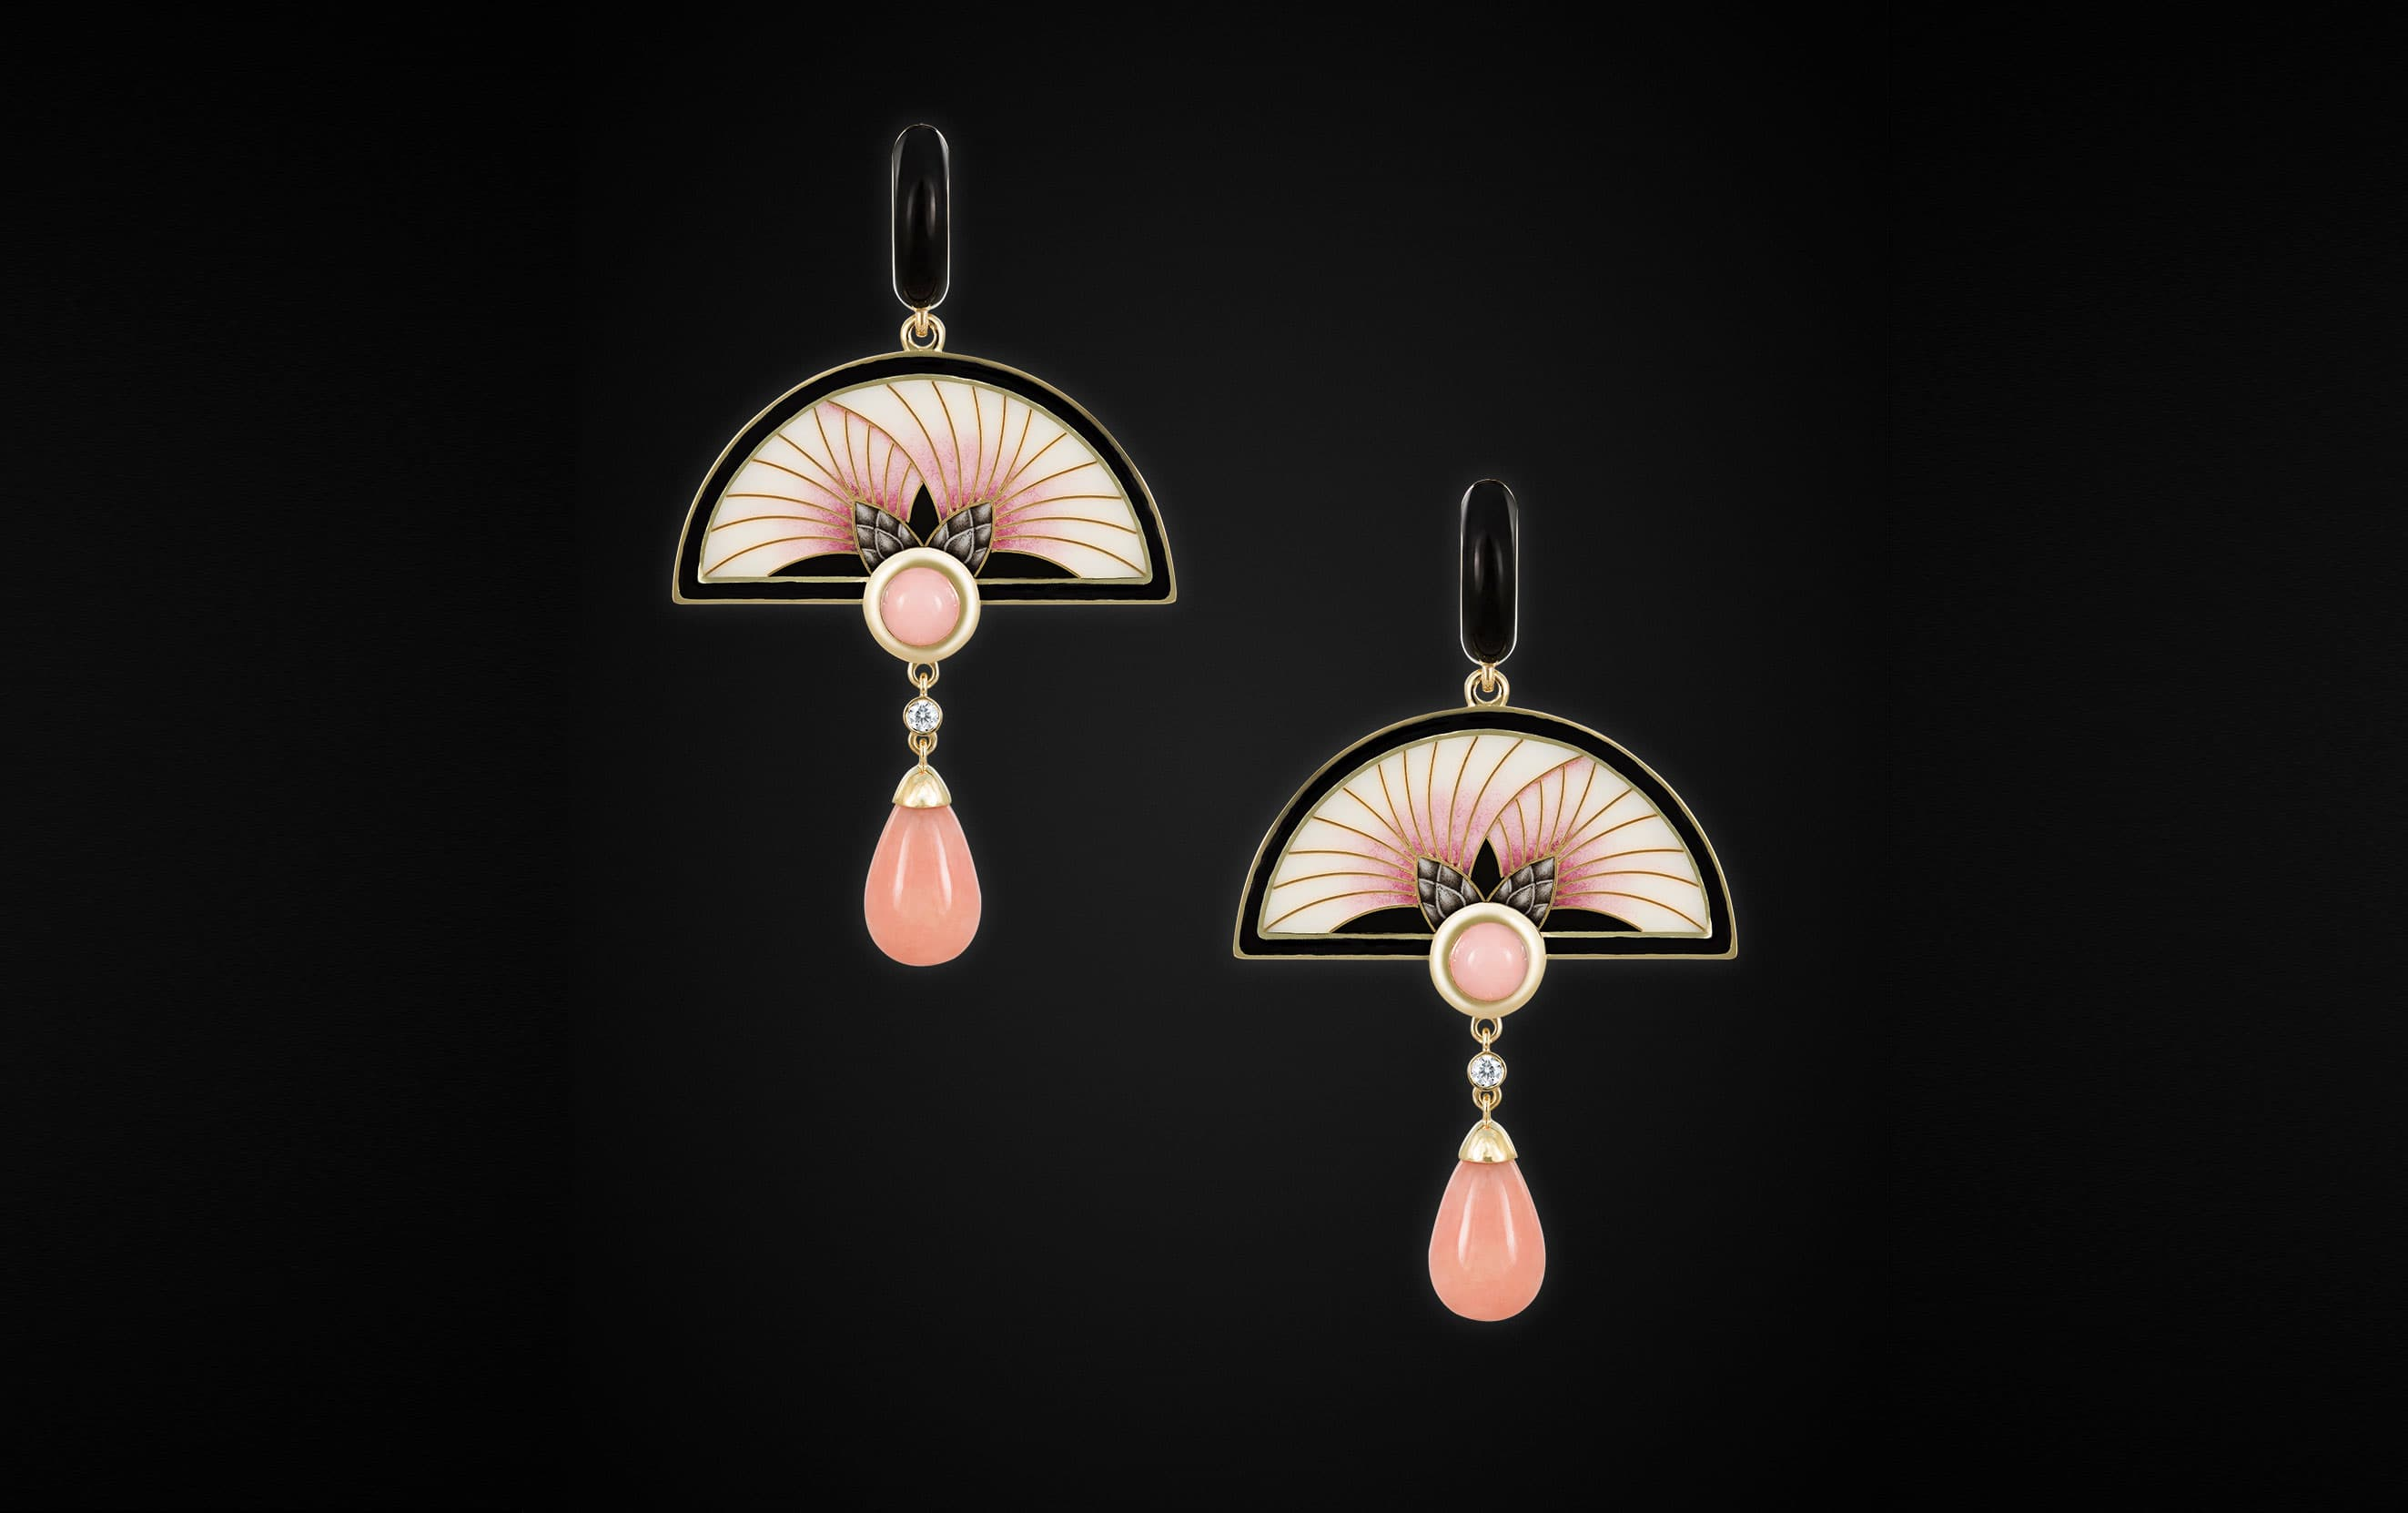 'Burdock' earrings by Ilgiz F. in art deco style embellished with hot enamel and pink opals